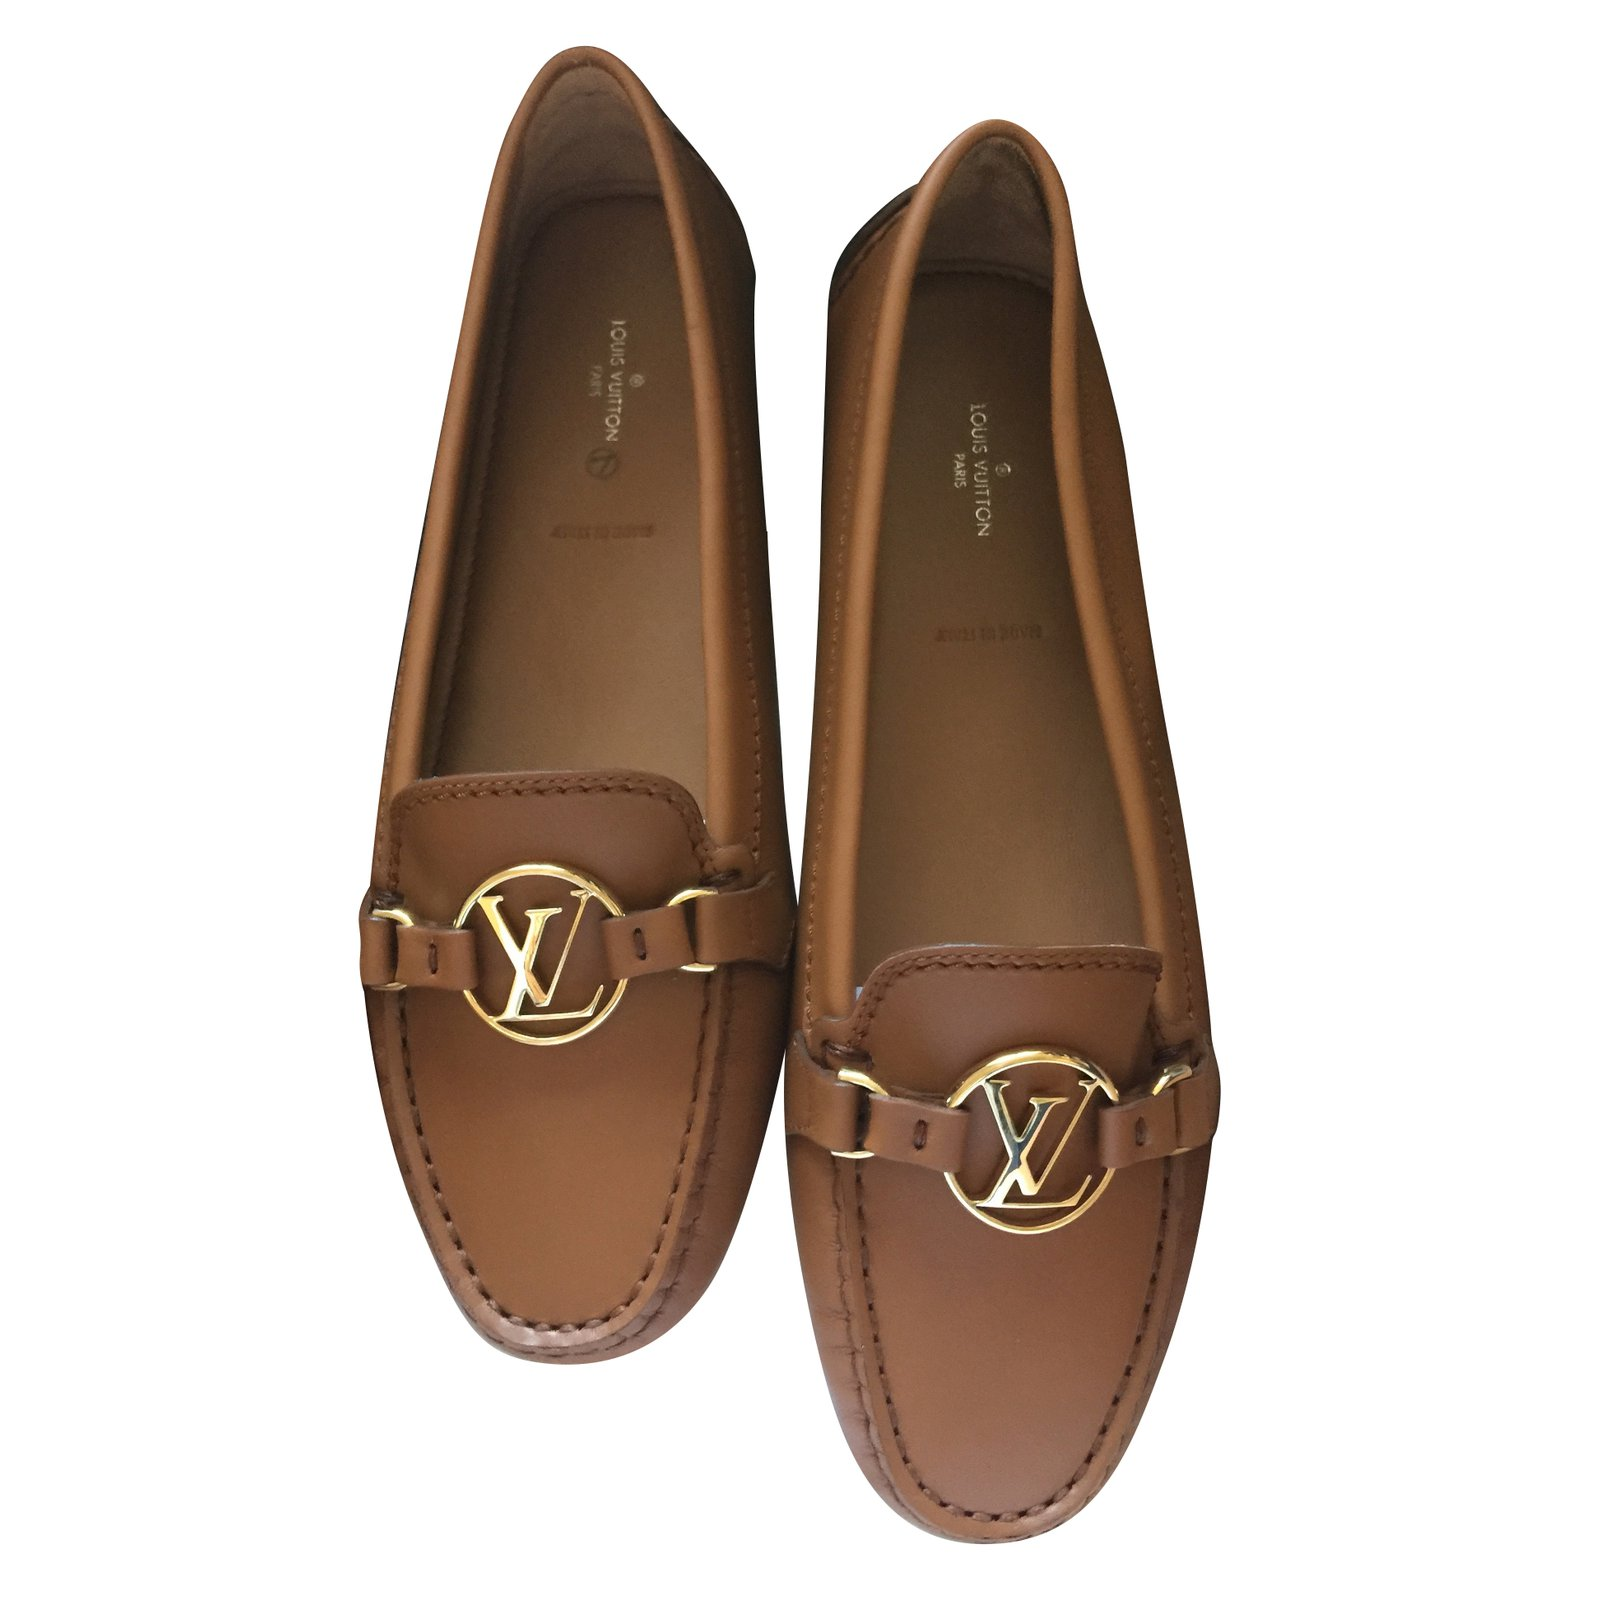 Louis Vuitton Dauphine Flat Loafer